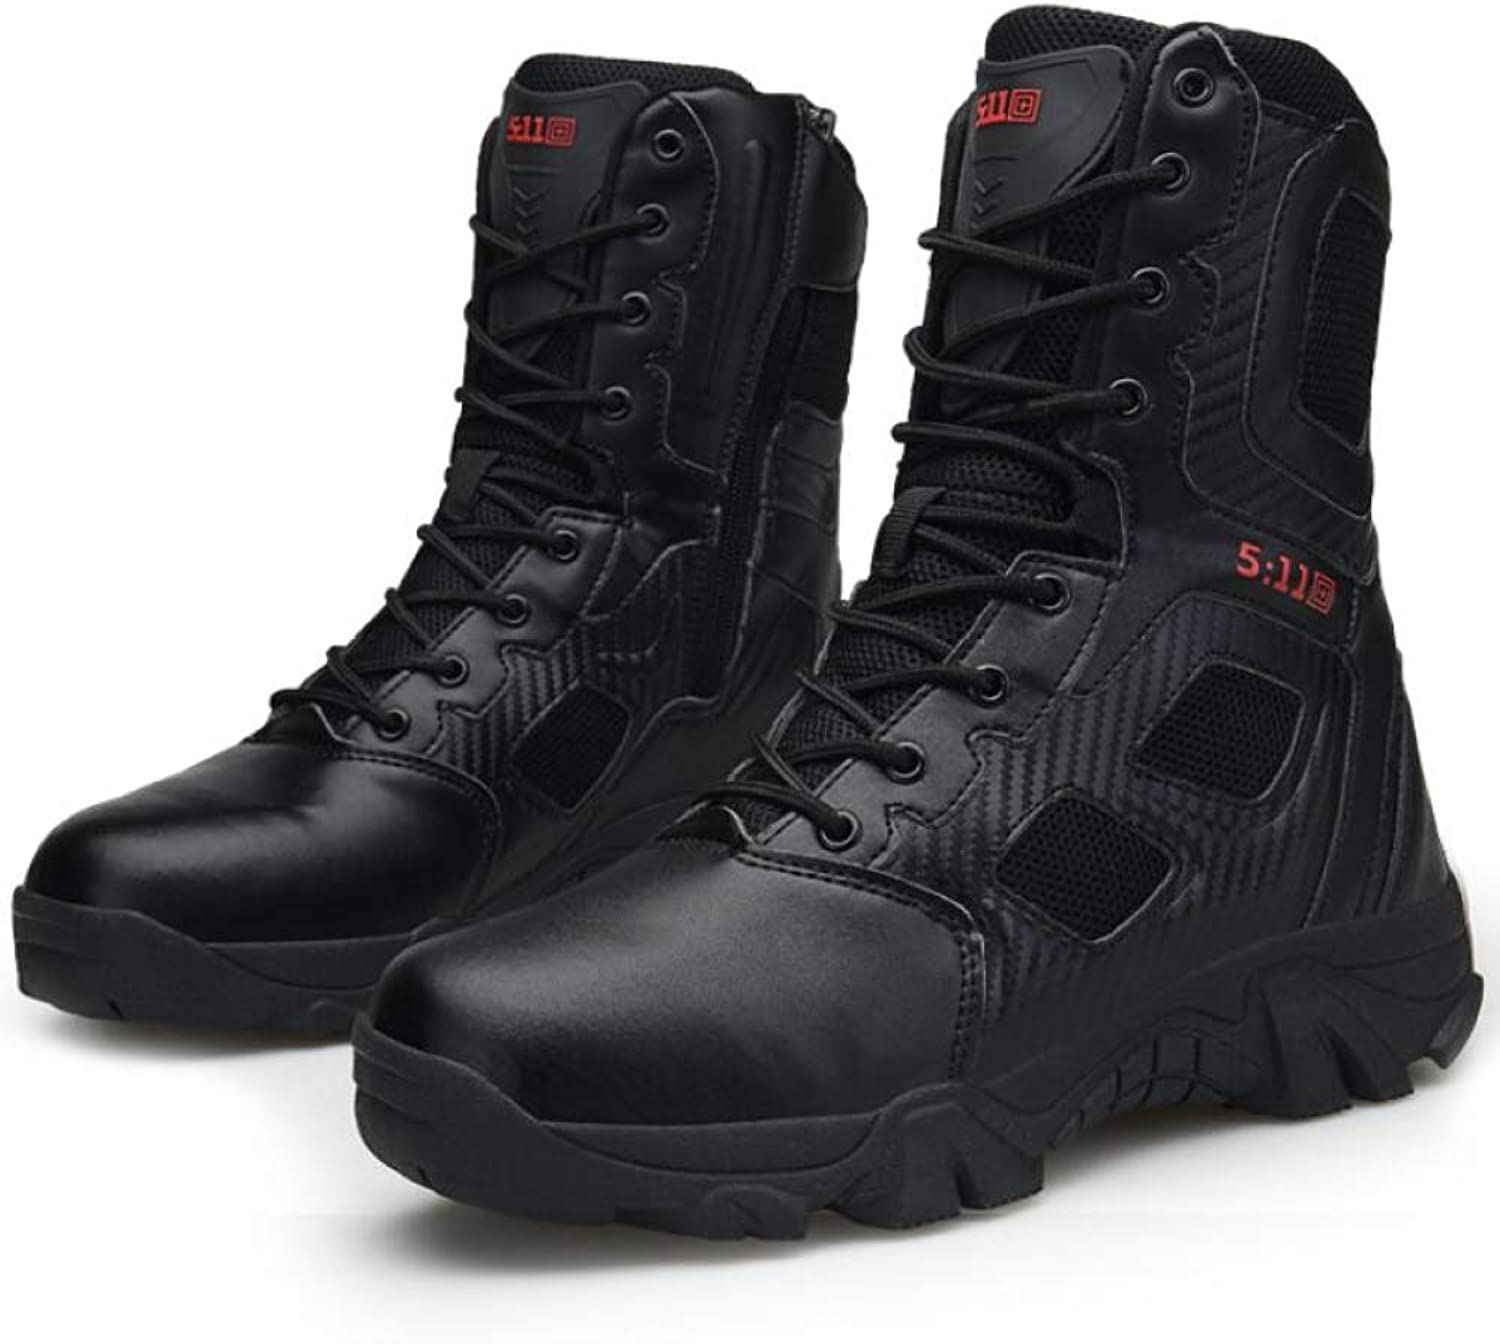 Winter Men's Boots Warm Lined Non Slip High Top shoes Outdoor Hiking Ankle Sneakers Size:40-45